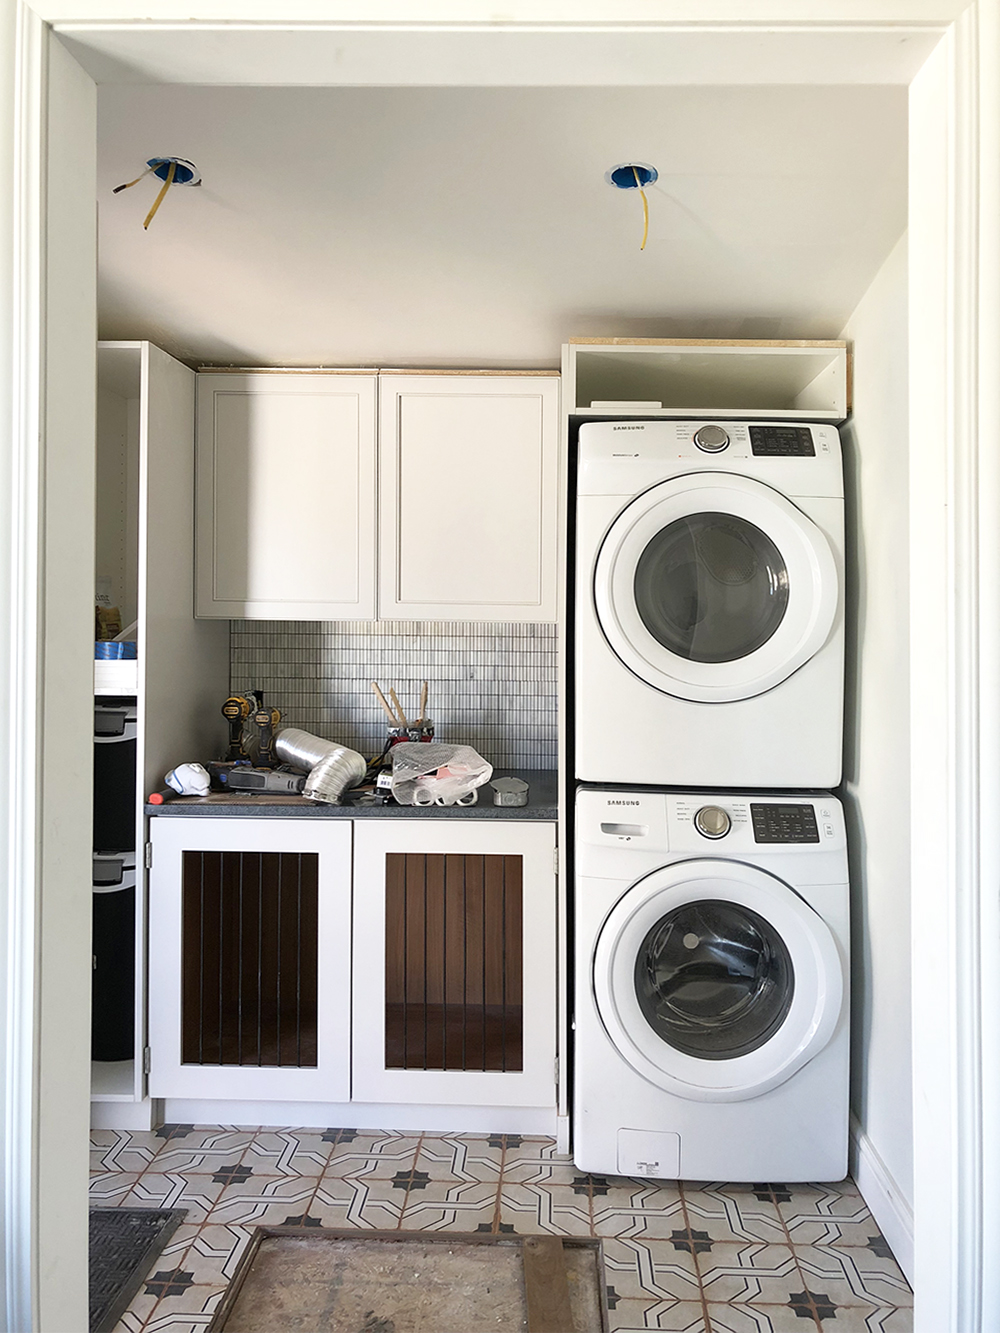 Laundry Room : One Room Challenge – Week 4 - roomfortuesday.com